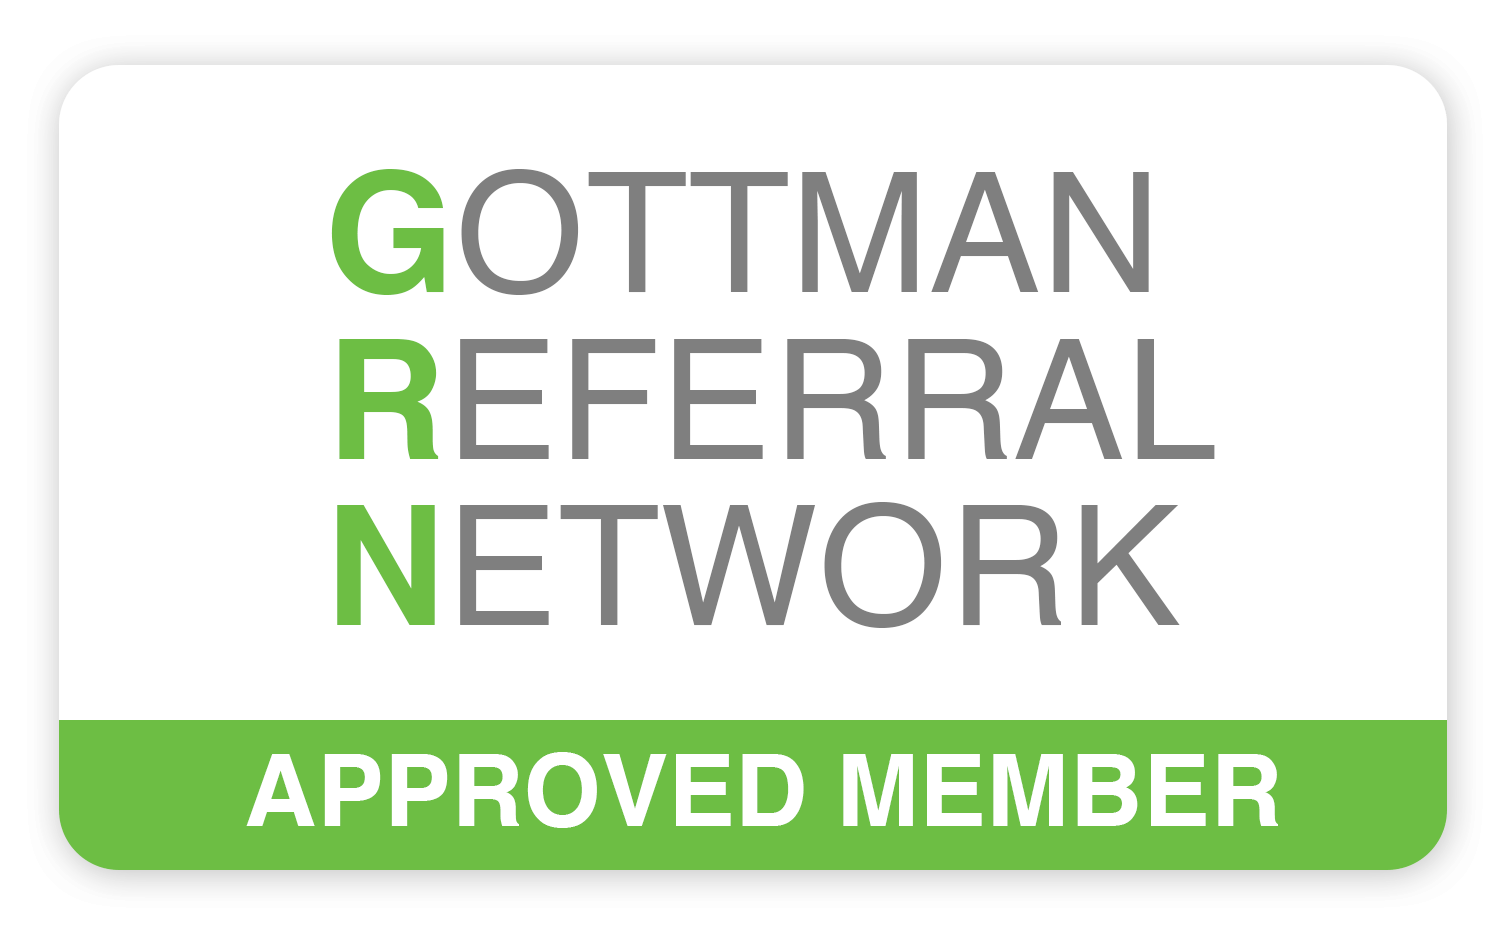 Ingrid Melenbacker's                         profile on the Gottman Referral Network